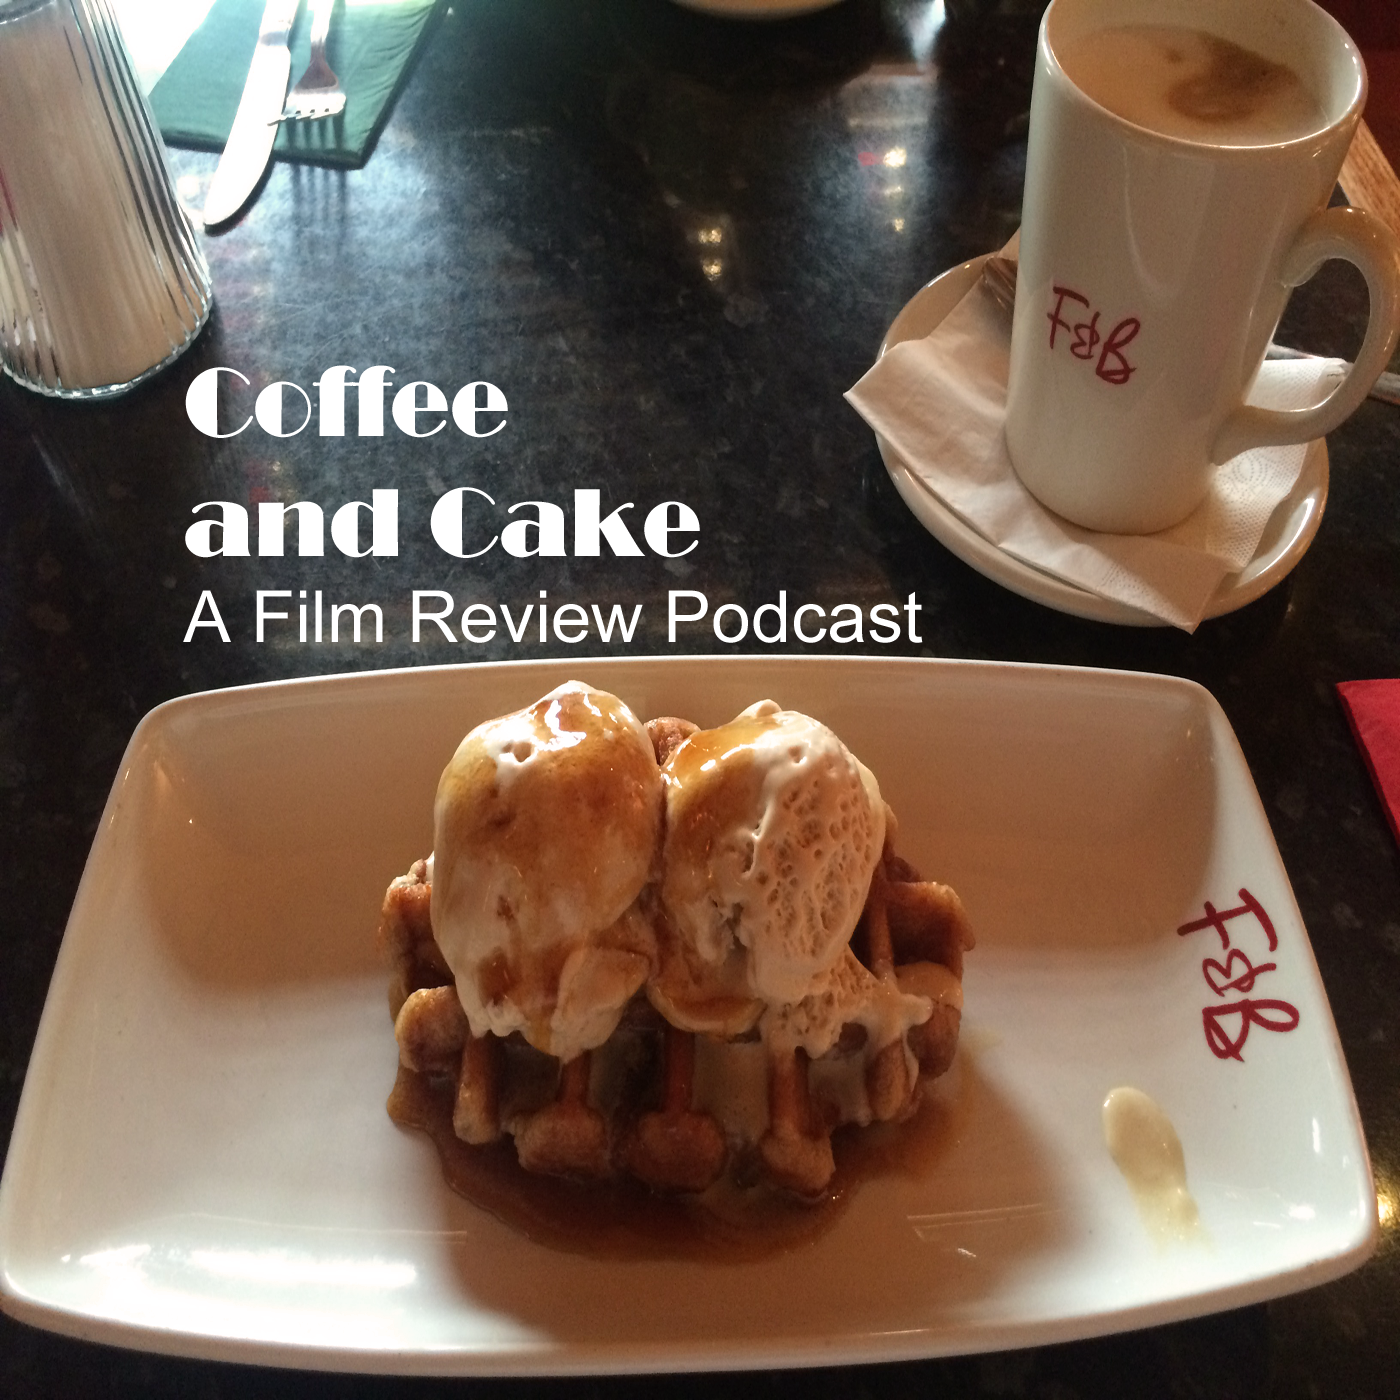 Film Review Podcast